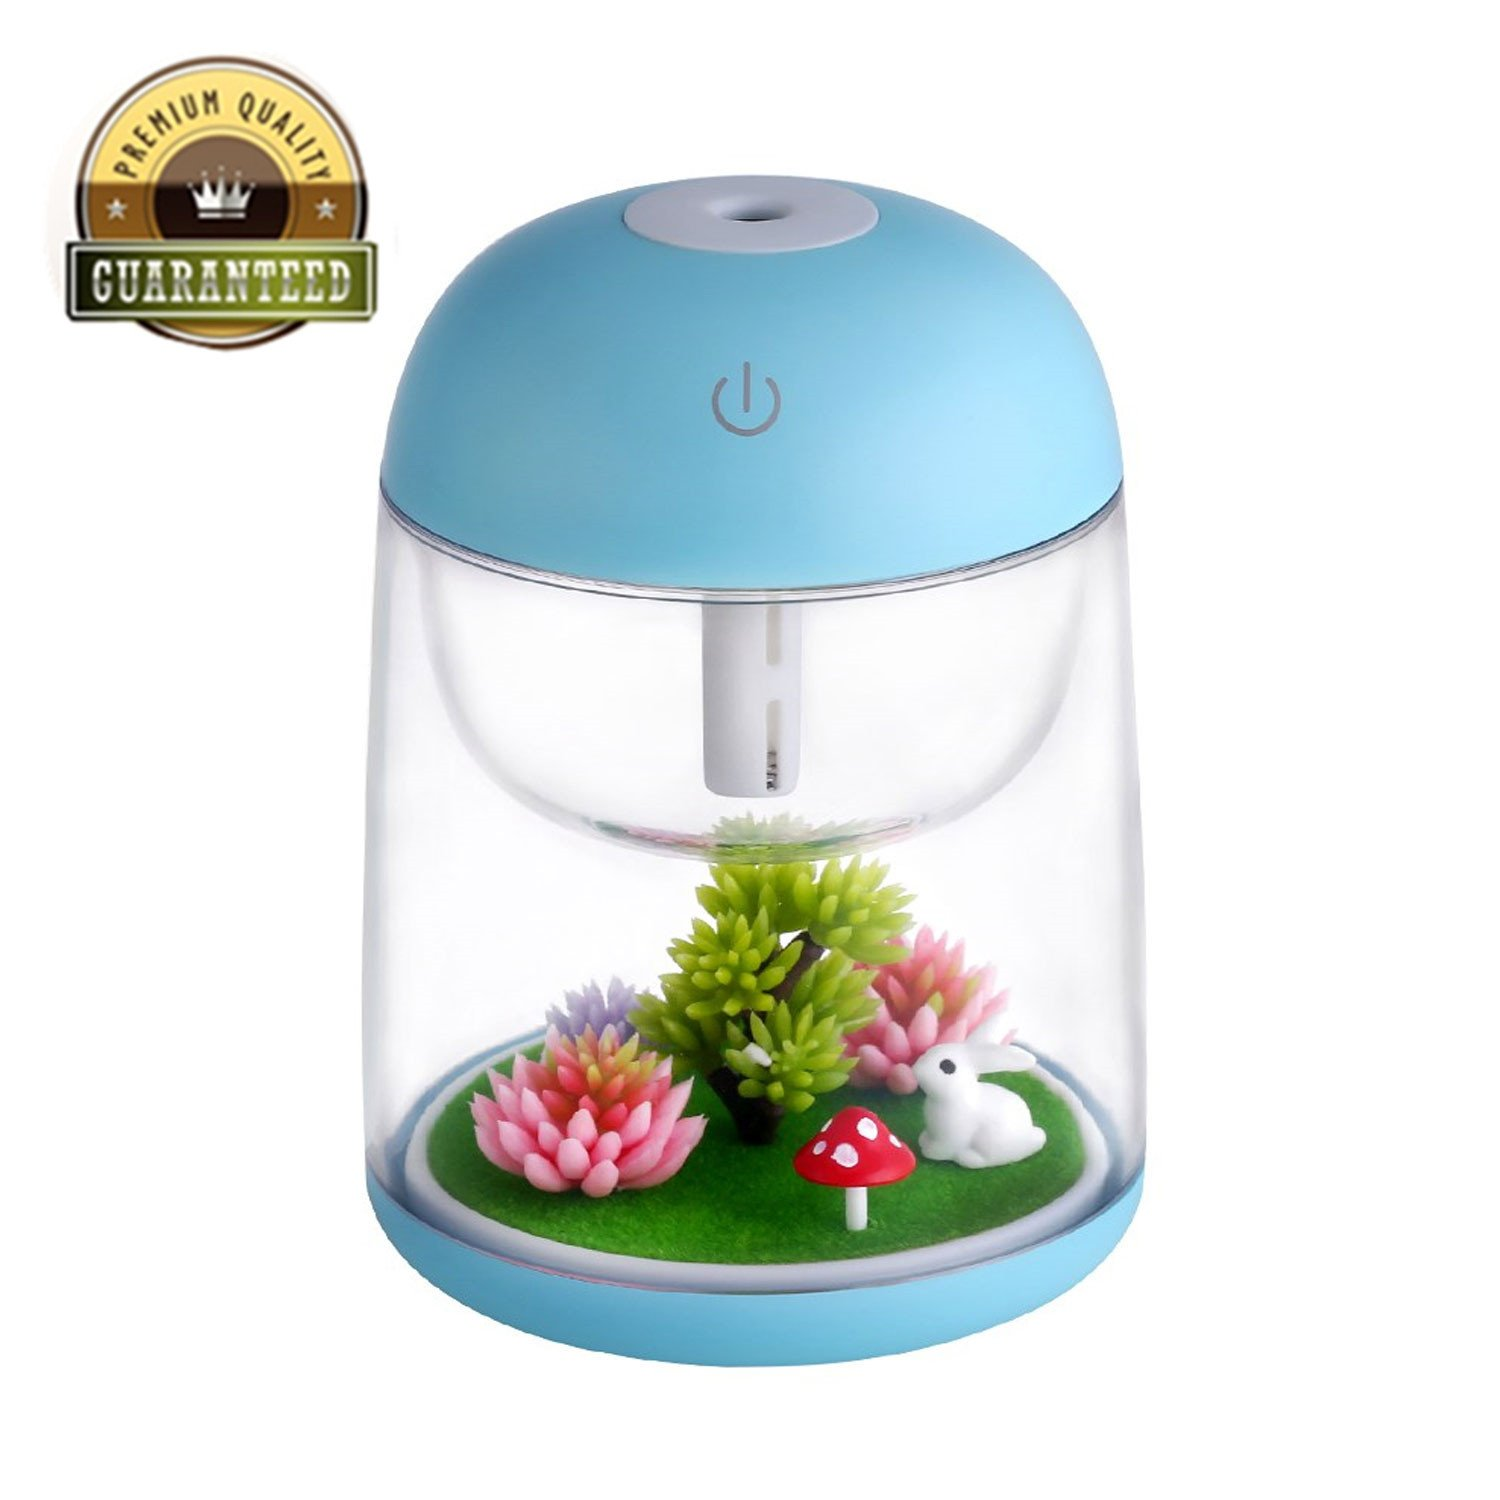 ZJX1111 Air Humidifier Micro LED Landscape, Adjustable Mist Mode, Waterless Auto Shut-Off Various Places Like Bedroom,Office,Car (Blue)